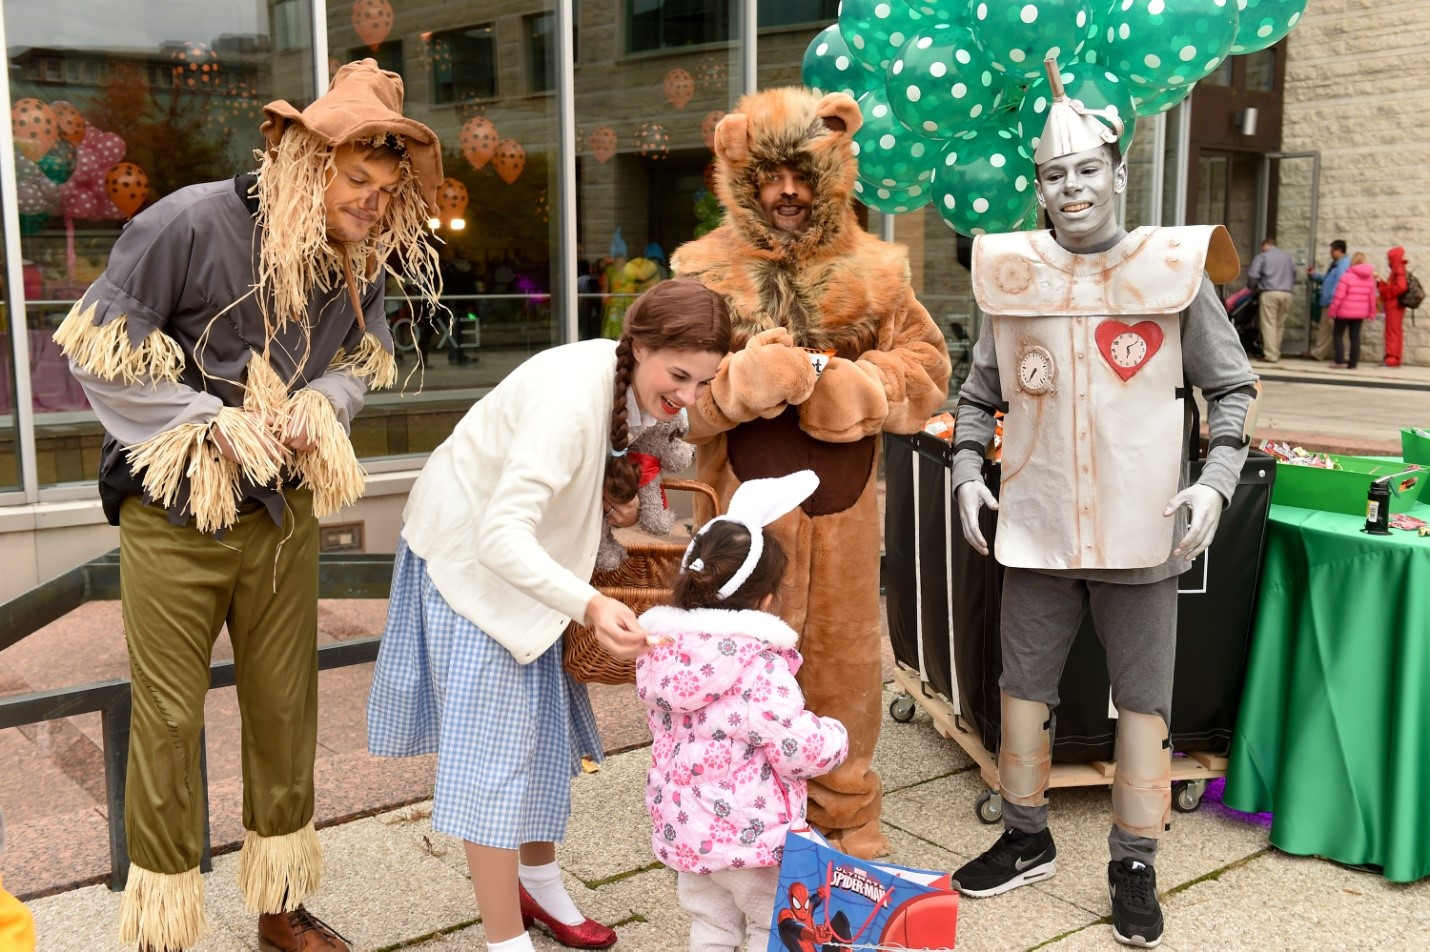 Wizard of Oz characters handing candy to child